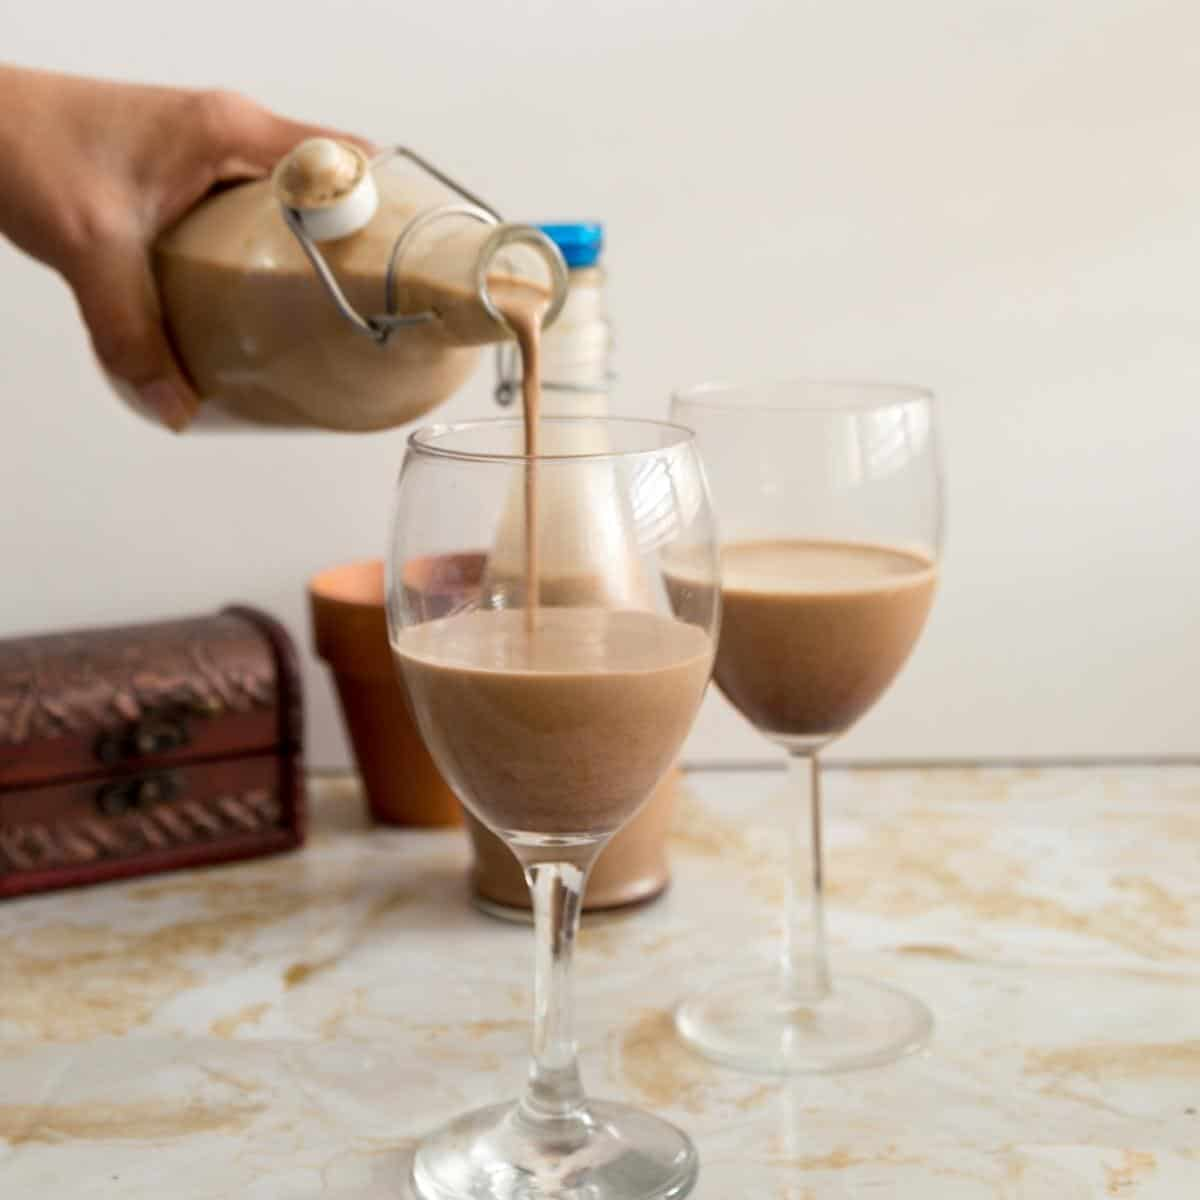 Pouring butterscotch Baileys in a wine glass